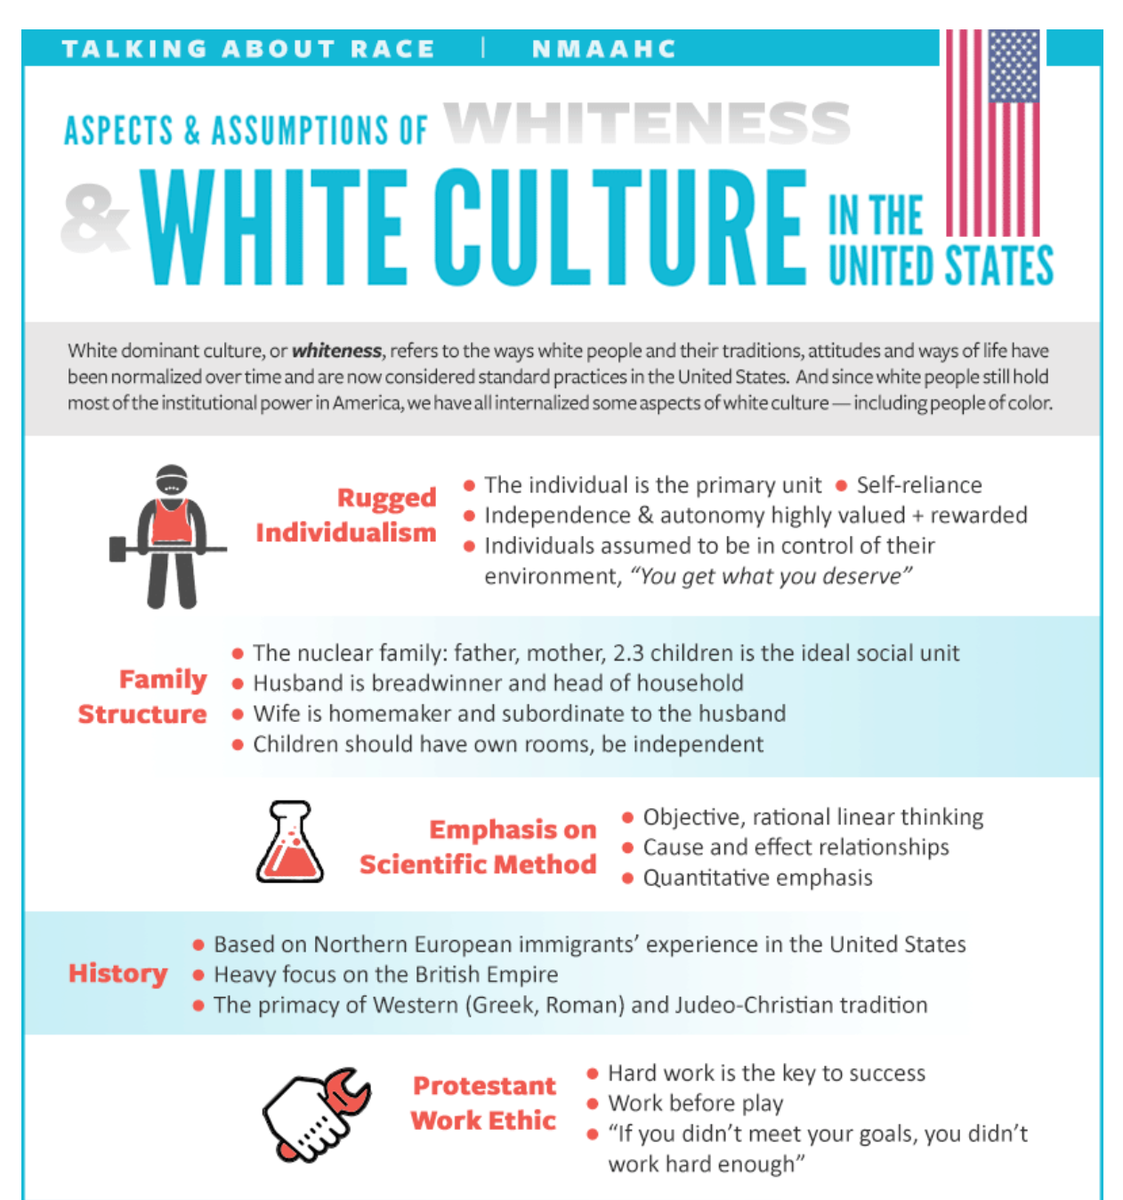 The National Museum of African American History & Culture wants to make you aware of certain signs of whiteness: Individualism, hard work, objectivity, the nuclear family, progress, respect for authority, delayed gratification, more.  (via @RpwWilliams)